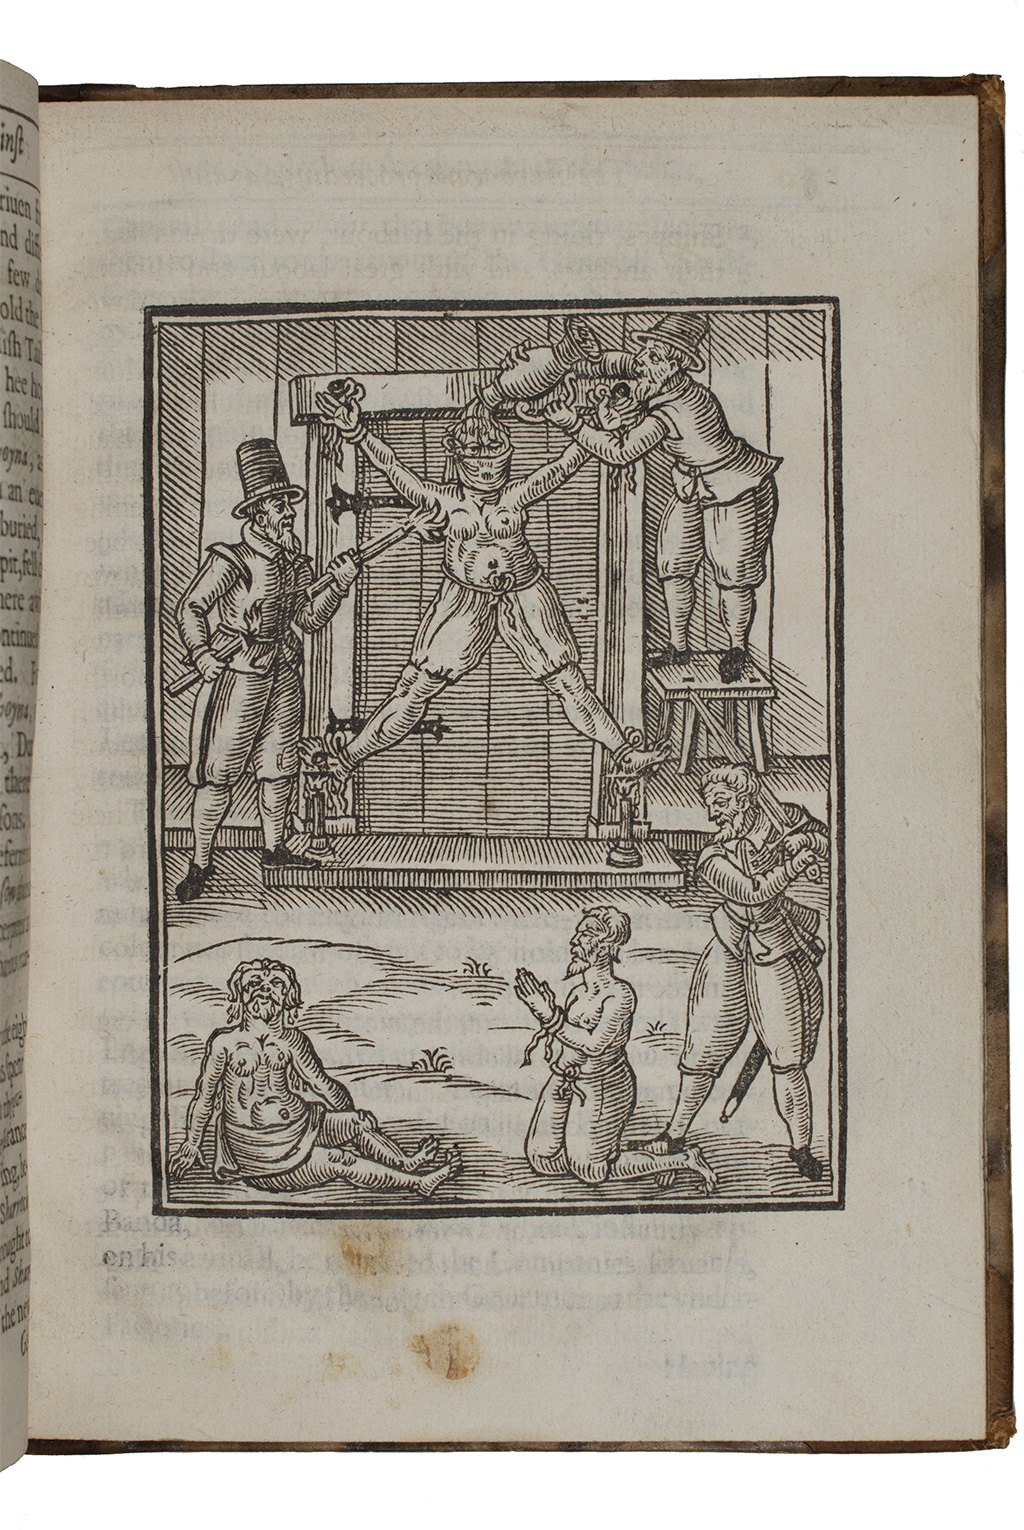 """A true relation of the vnivst, crvell, and barbarovs proceedings against the English at Amboyna in the East-Indies (London: Nathanael Newberry, 1624), sig. """"E3""""2. Harry Ransom Center Book Collection, DS 646.6 E2 1624b."""